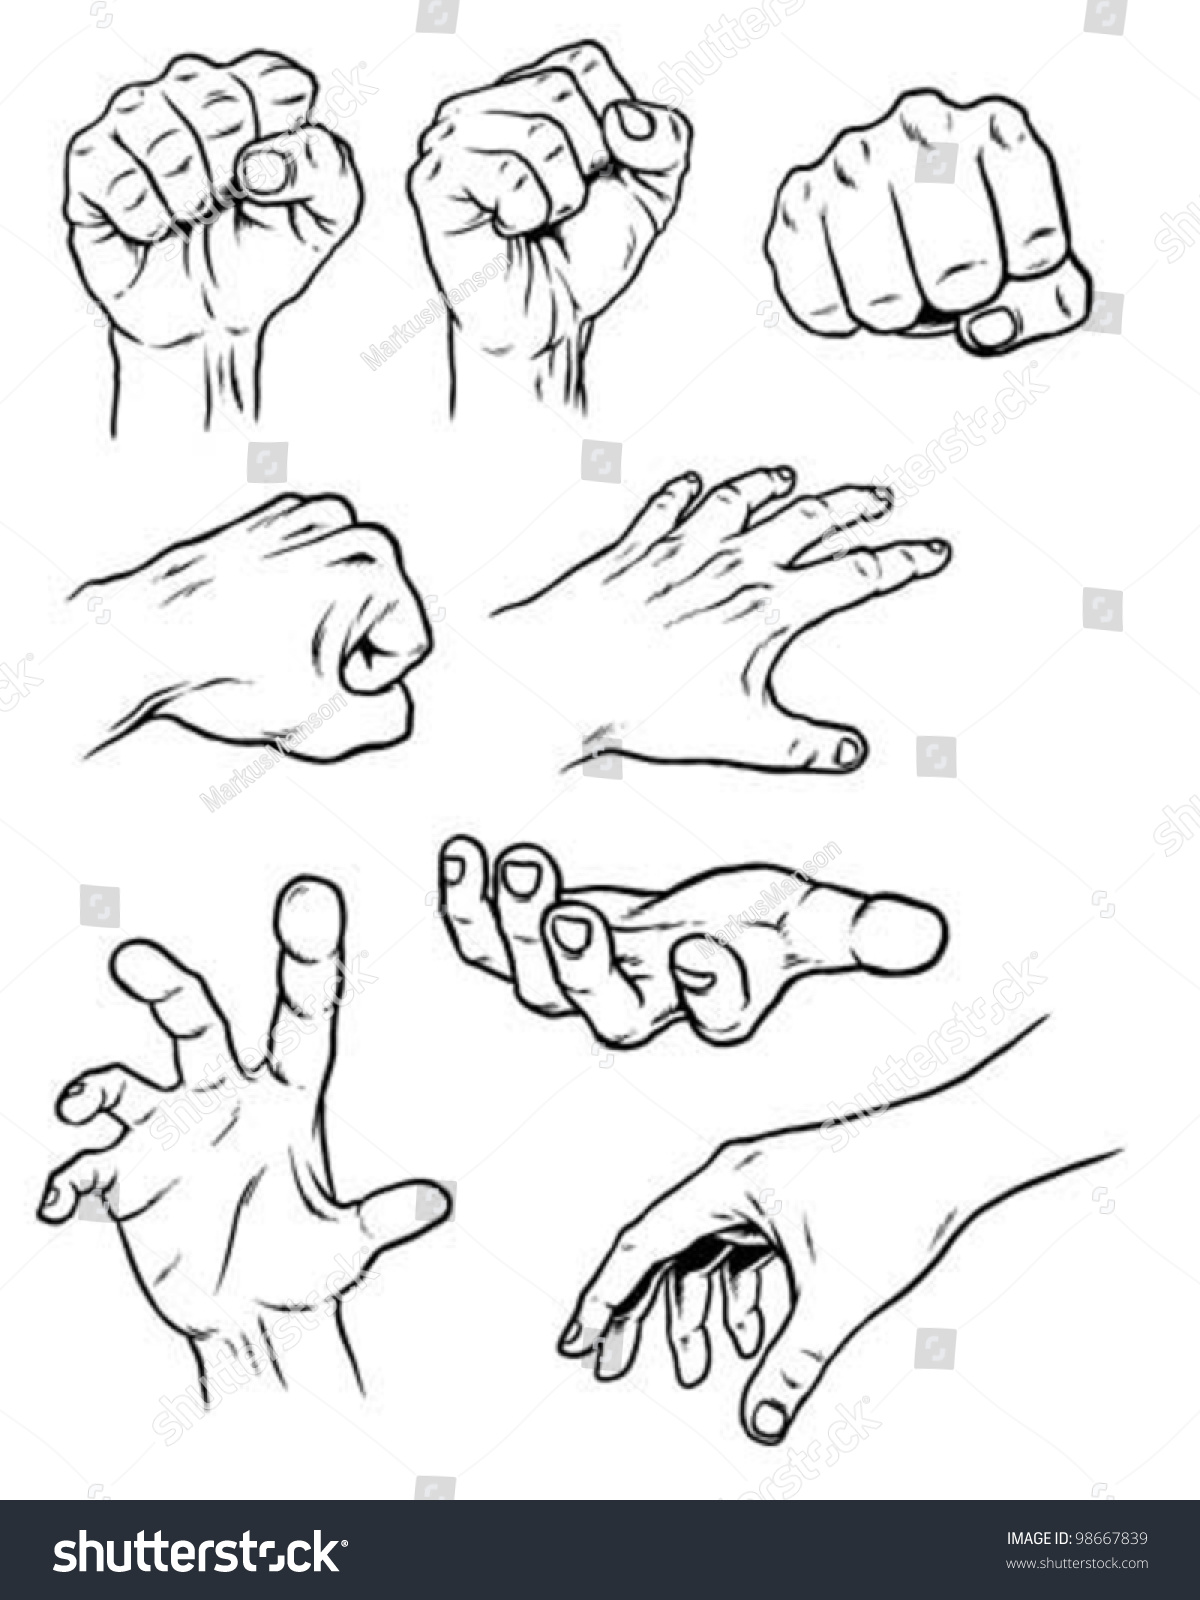 Hand Poses Stock Vector 98667839 - Shutterstock